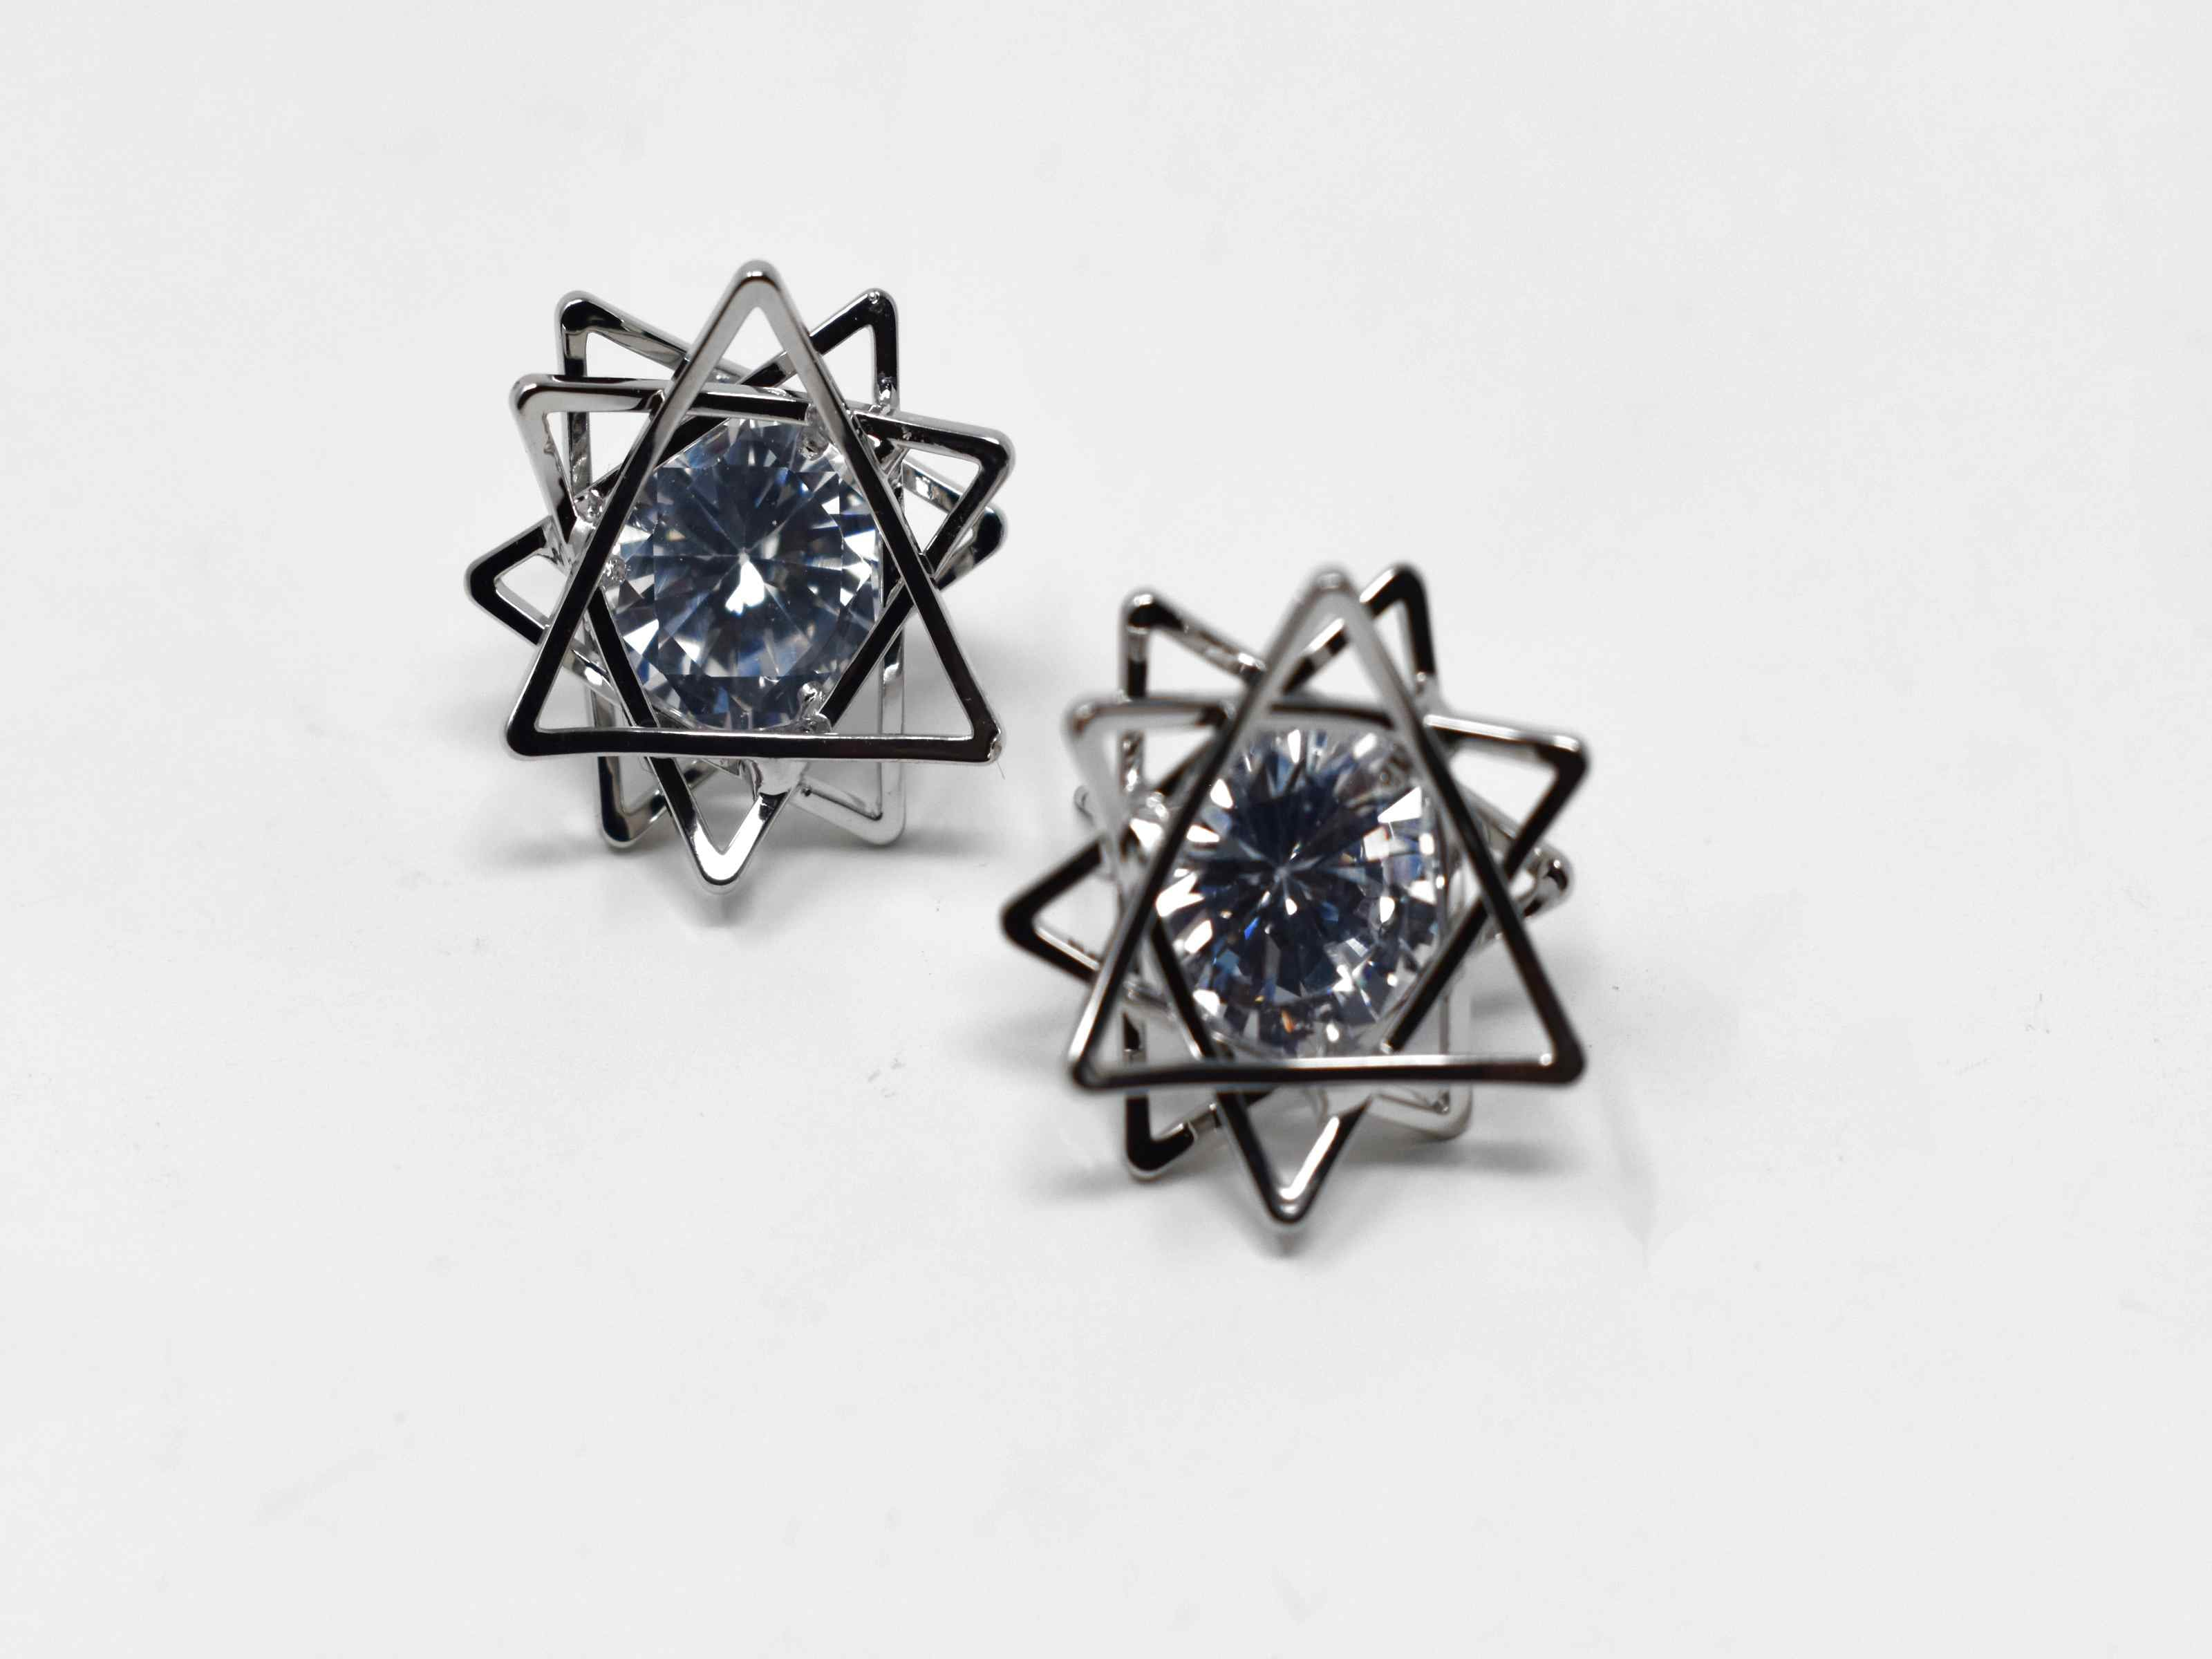 Dress up or dress down for any occasion  with our echium earrings. These silver earrings are a silver star flower knob earring with a centered stone. they have a push back clasp and are 1/2 inch in length.